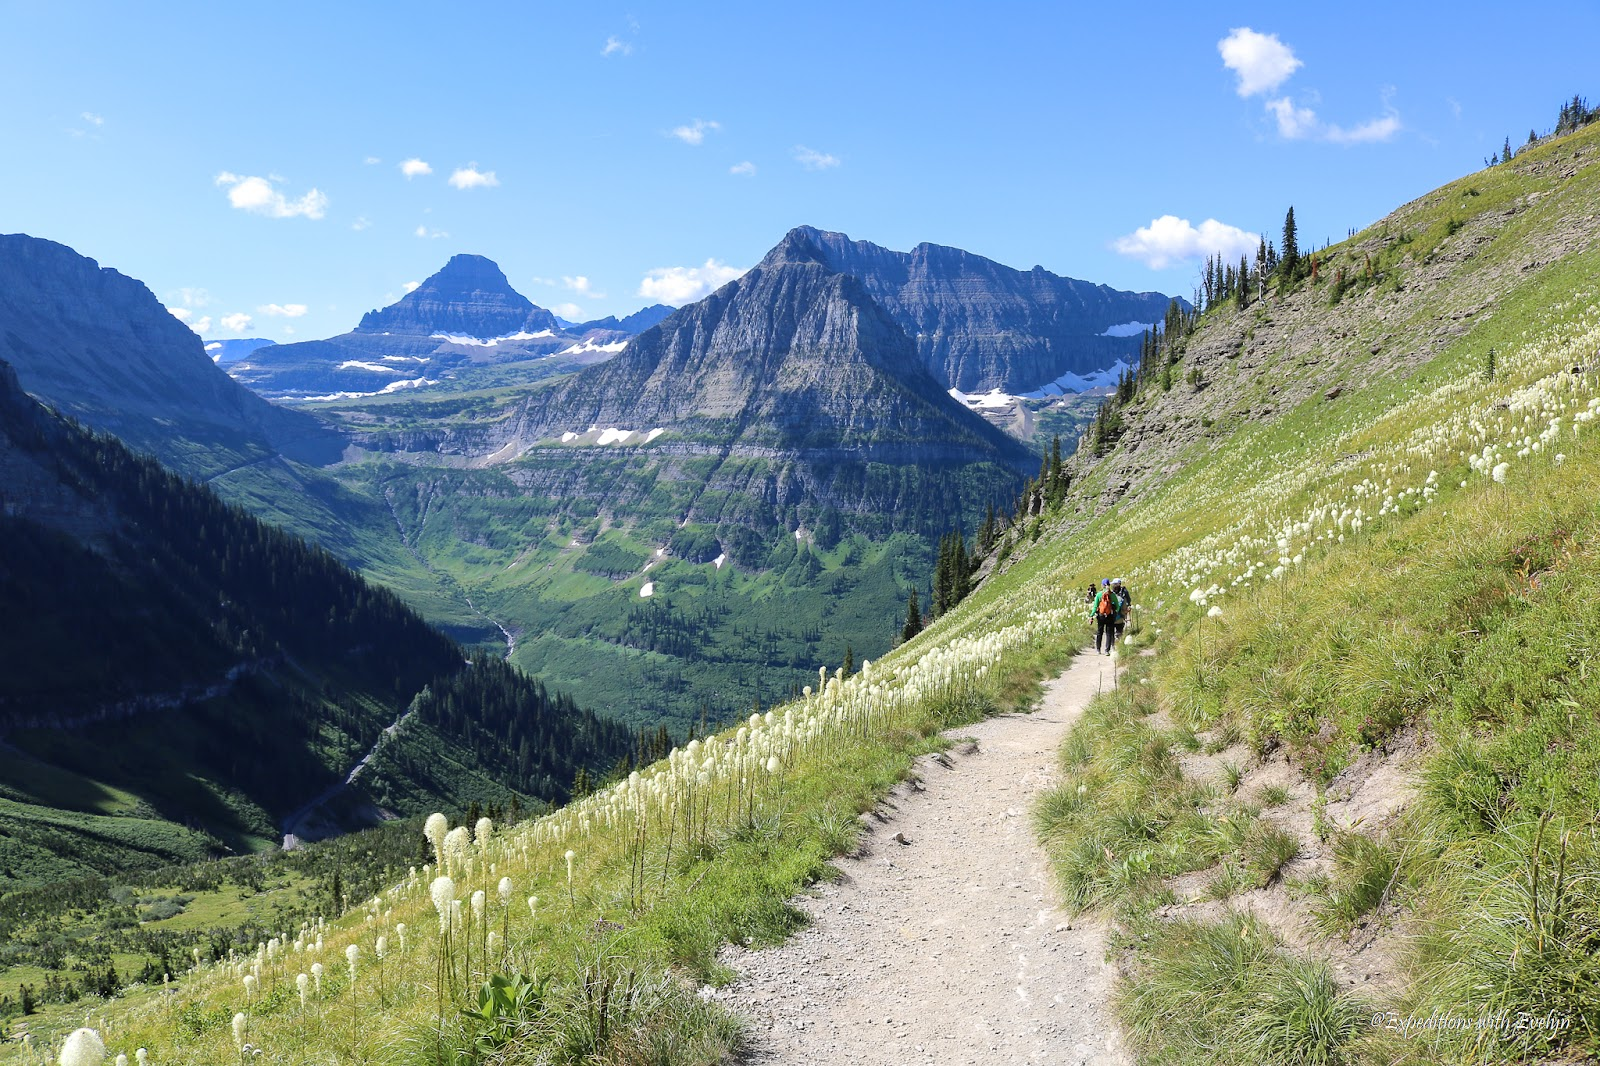 A dirt path meanders through green grass dotted with bear grass.  Mountain peaks line the horizon speckled with snow.